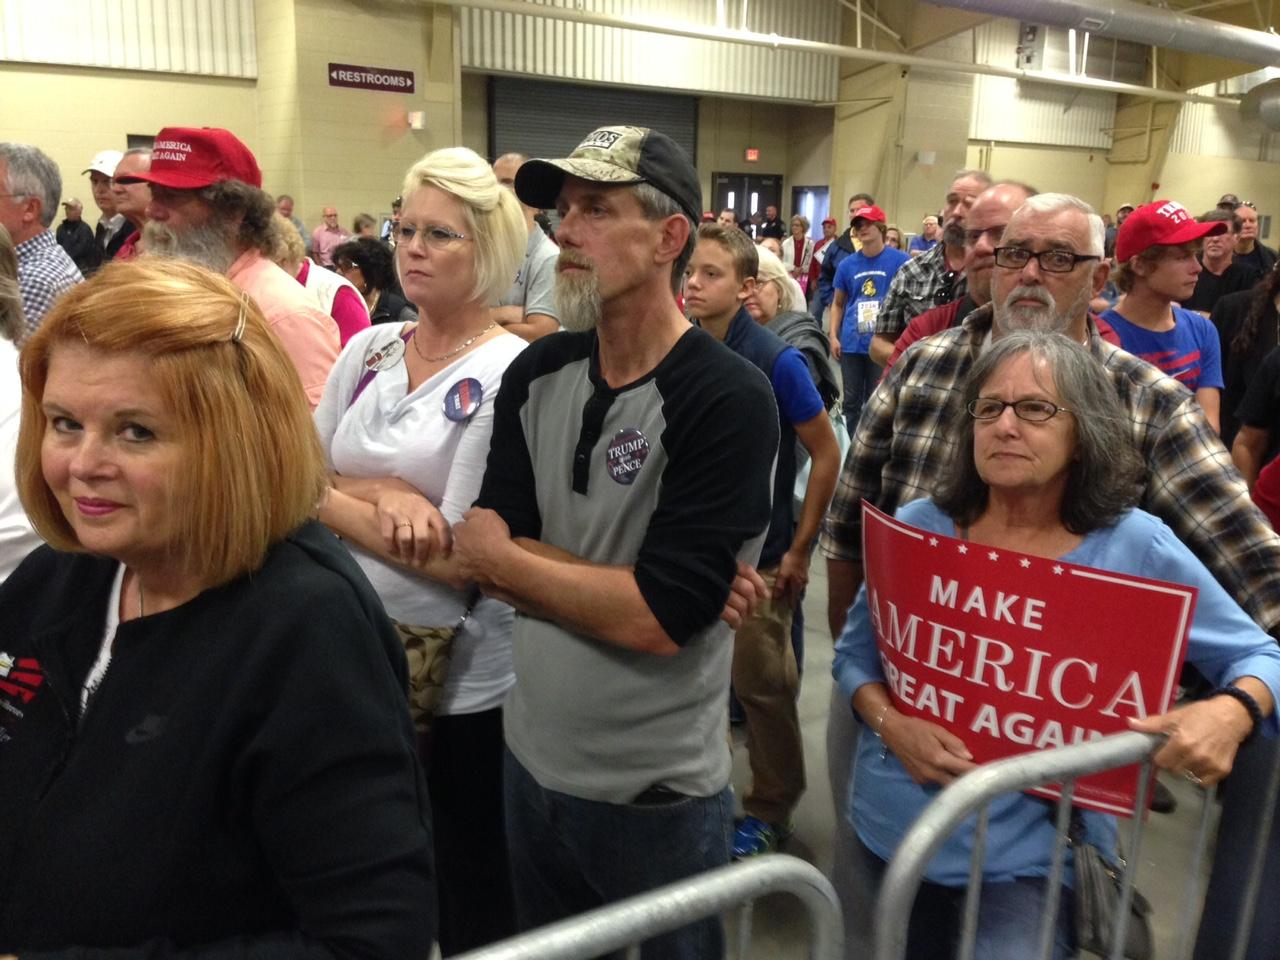 The crowd at the Donald Trump rally on October 21. (Photo credit: WLOS staff)